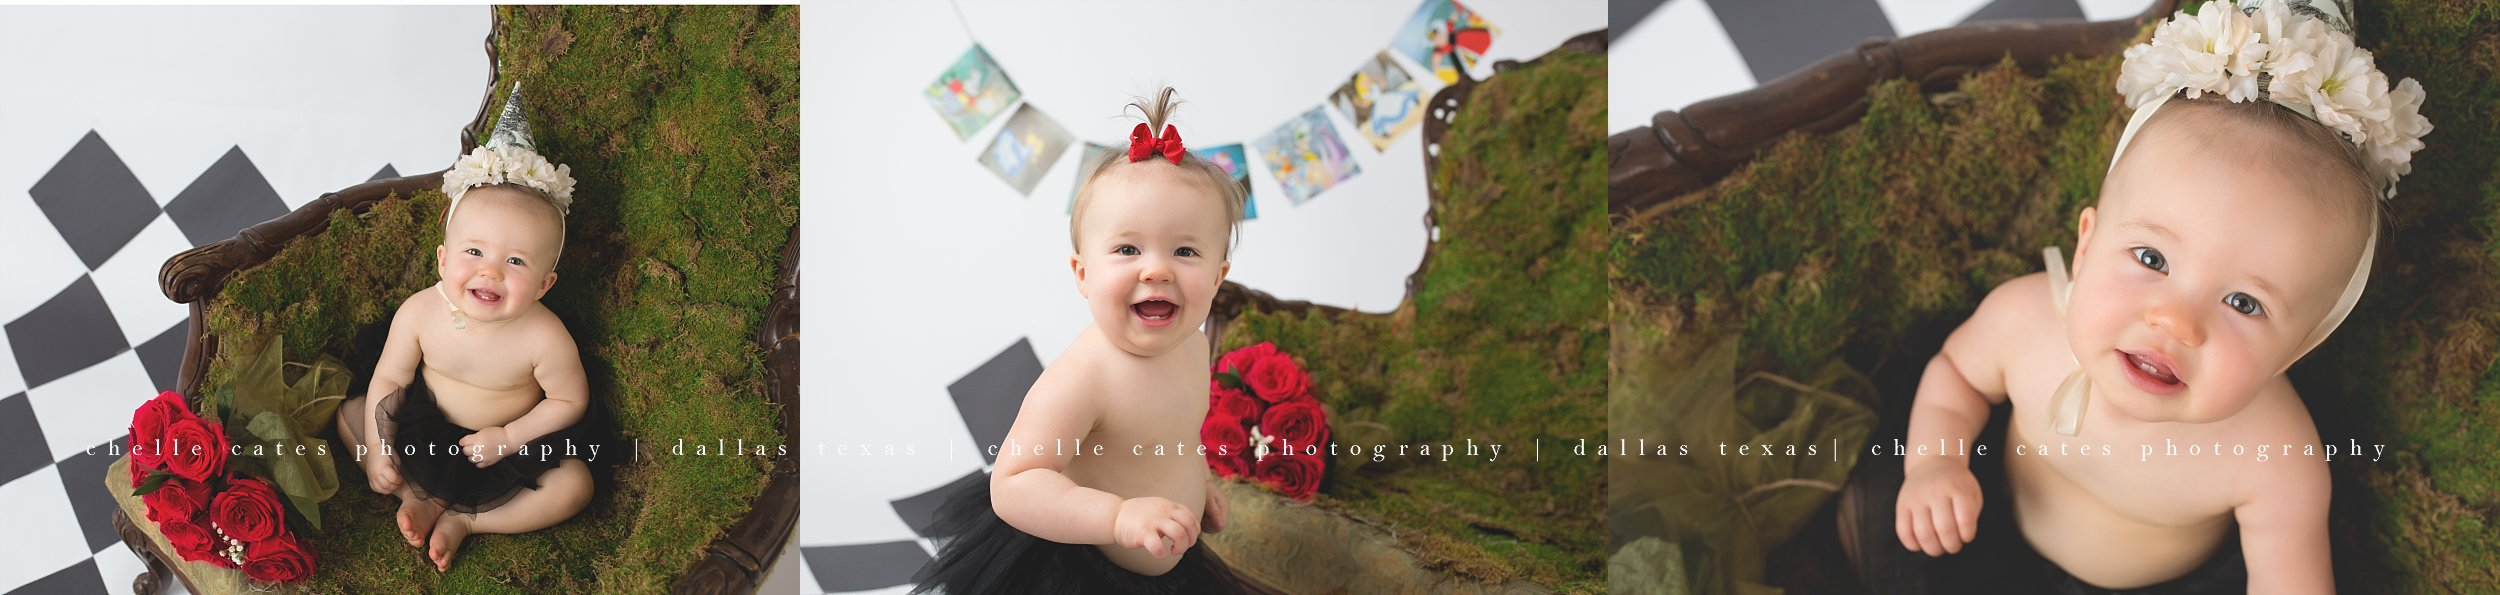 Dallas Children's photographer, First Birthday, cake smash, alice in wonderland theme, baby girl turns one year old, green moss chair, black and white checked floor with simple banner